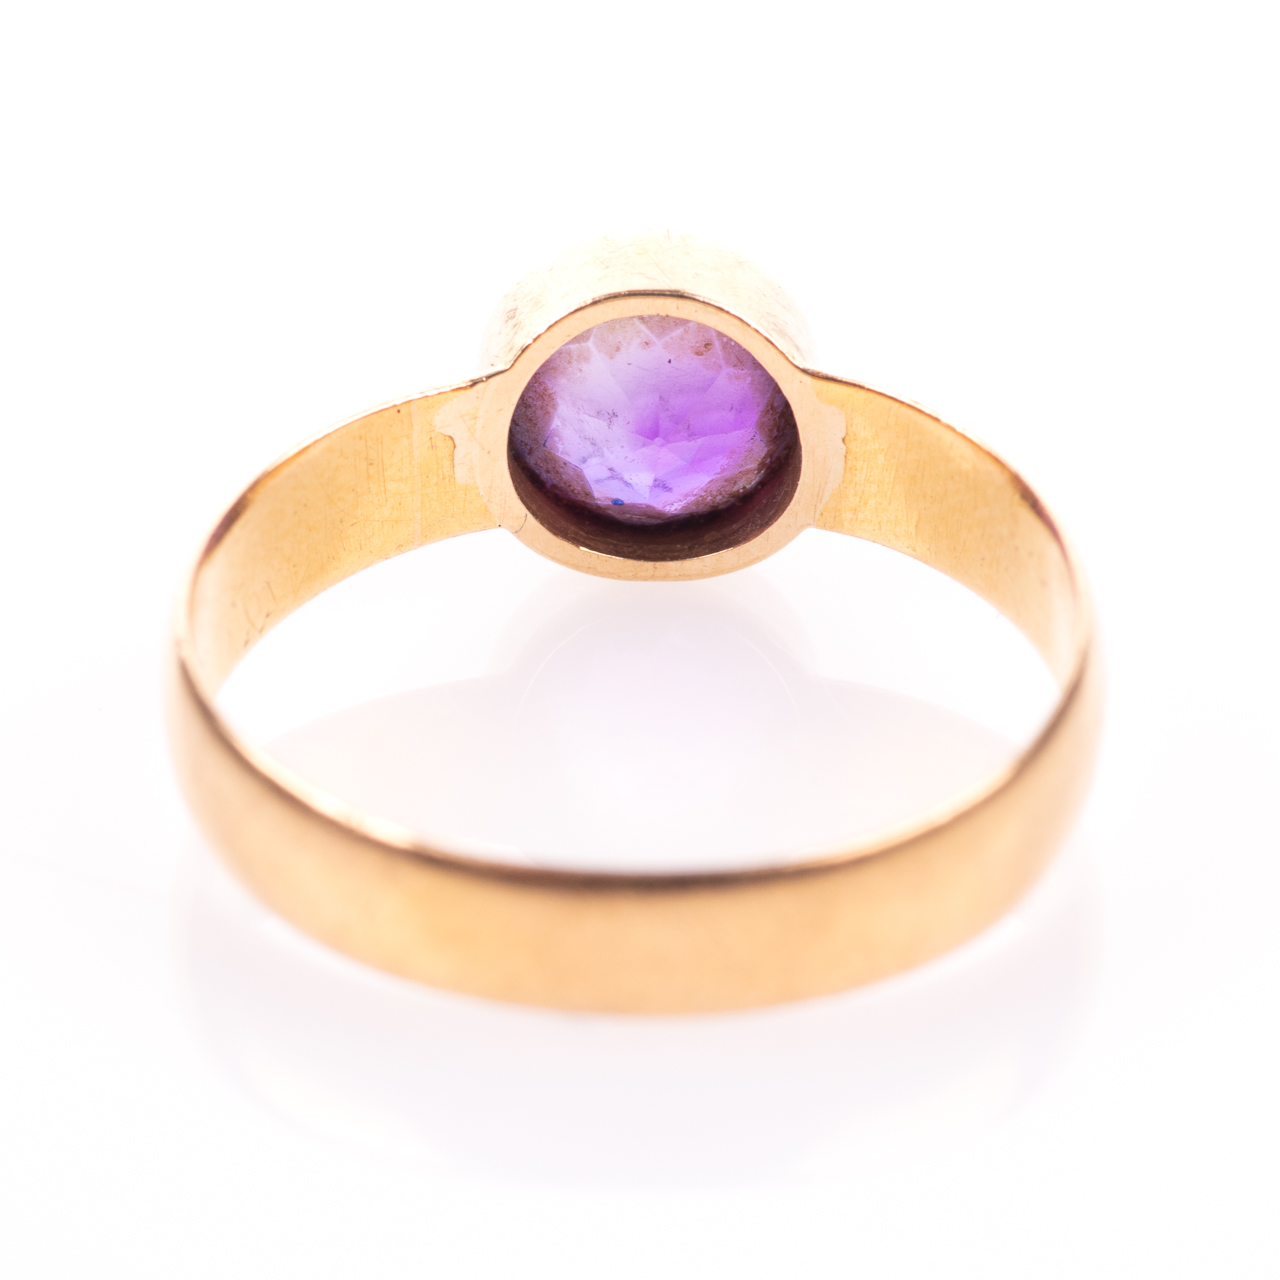 22ct Gold Victorian Amethyst Ring Chester 1899, Howard & Walsh - Image 6 of 7